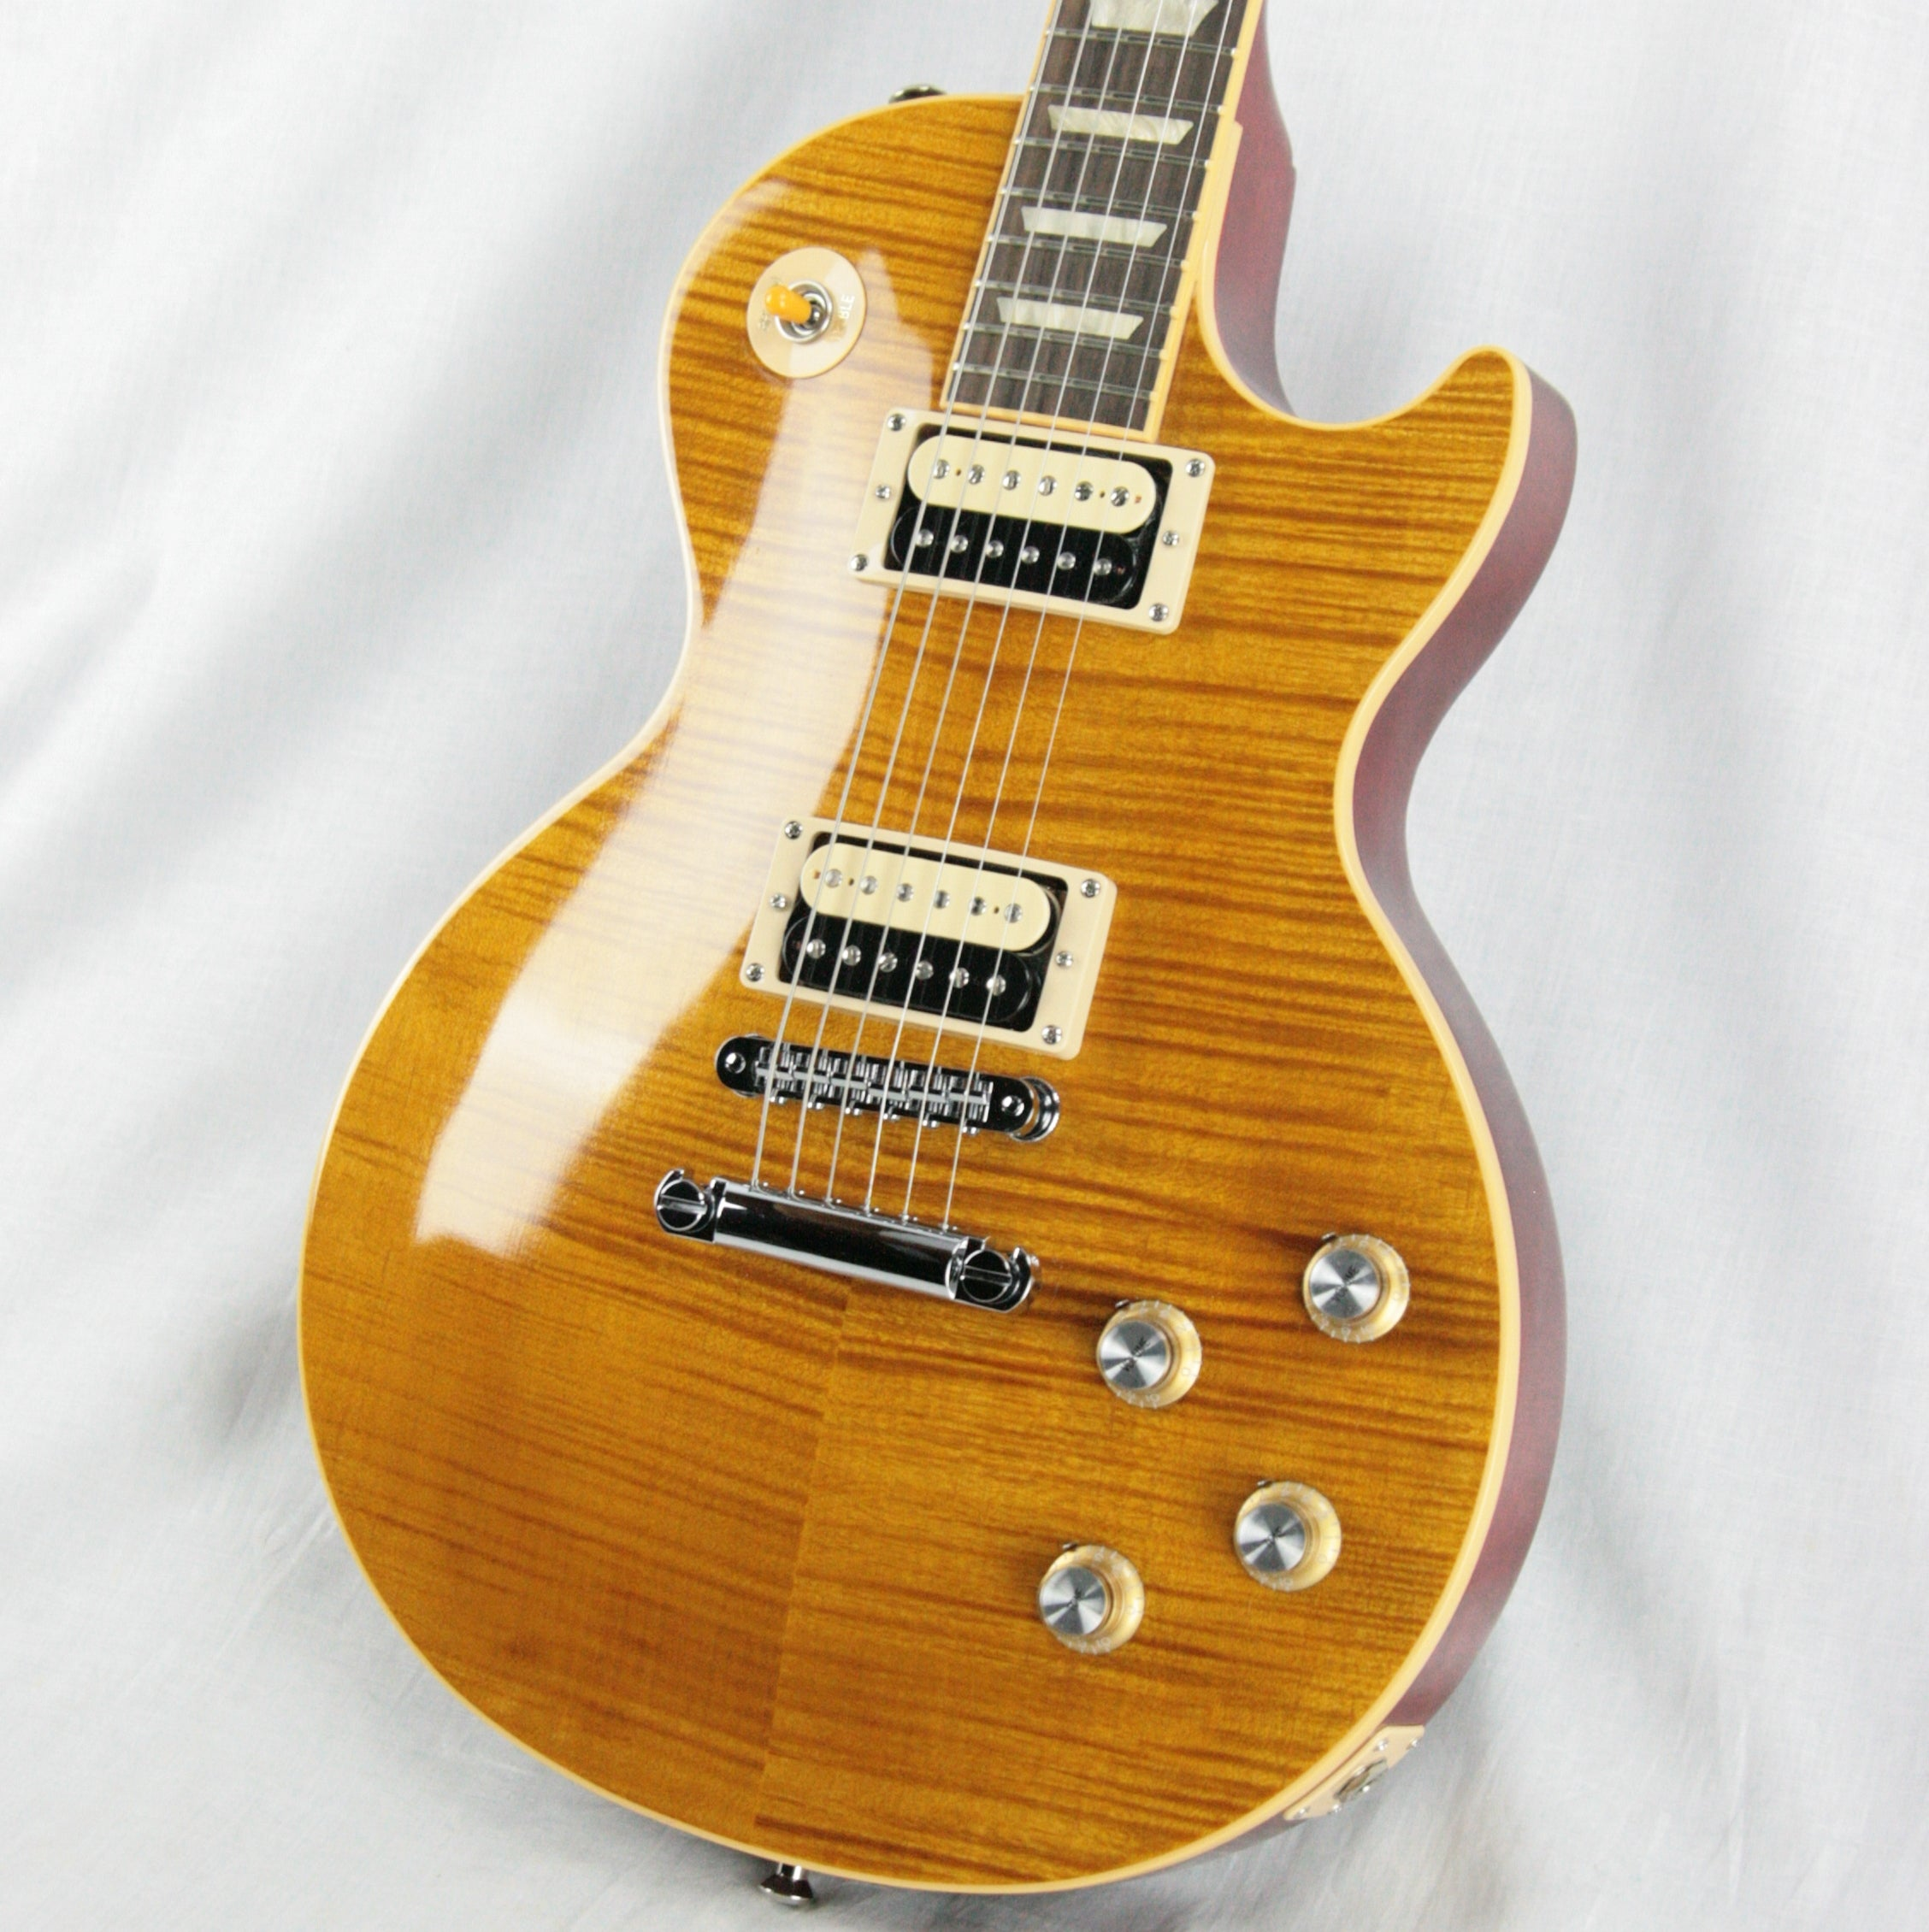 2010 Gibson SLASH AFD Signature Model Les Paul Appetite For Destruction USA Amber Flametop